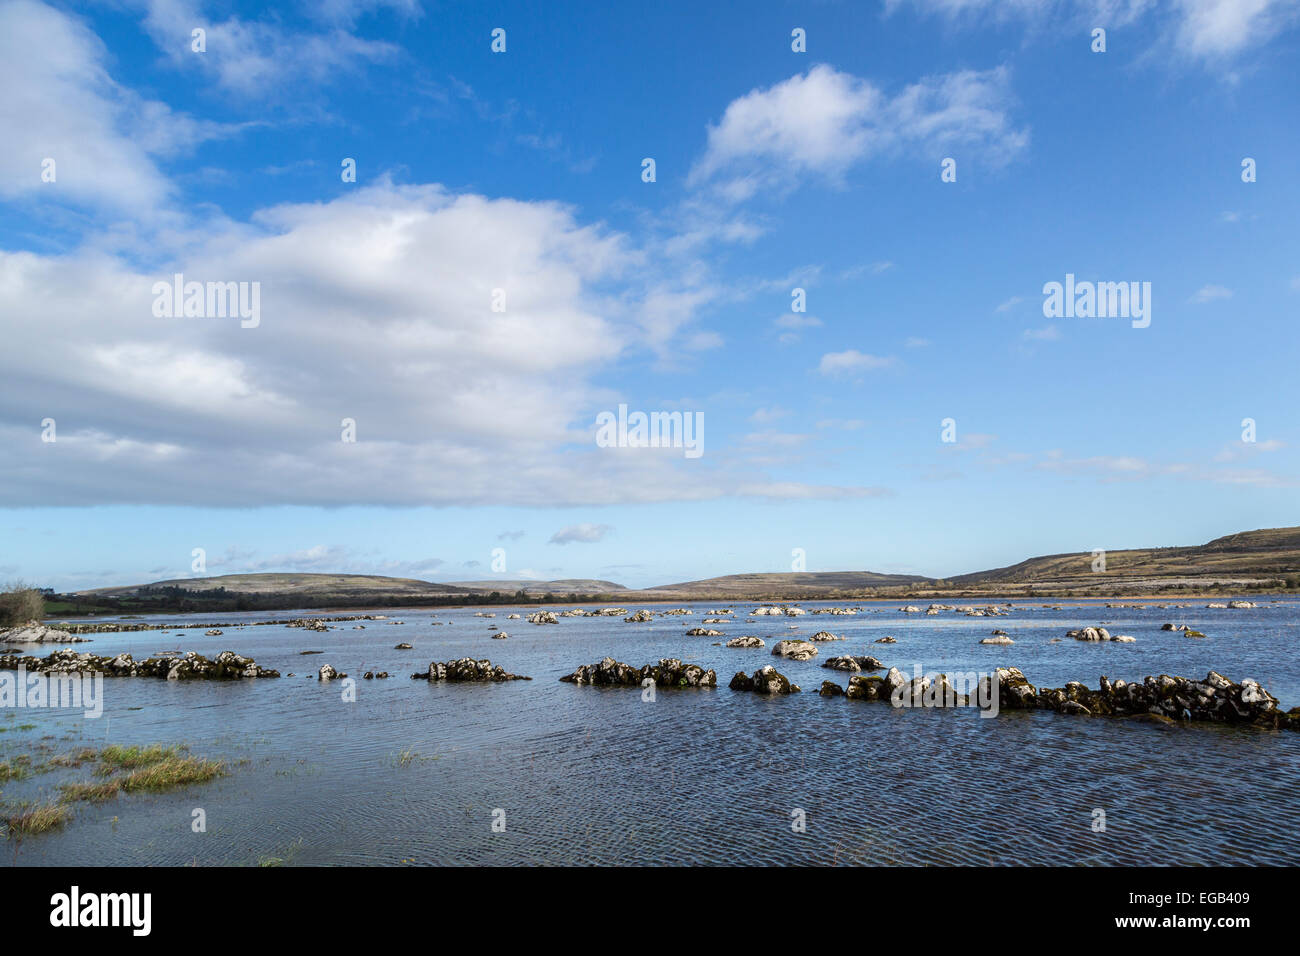 Carran Turlough seasonal flooded fields, Burren, Co. Clare, Ireland - Stock Image